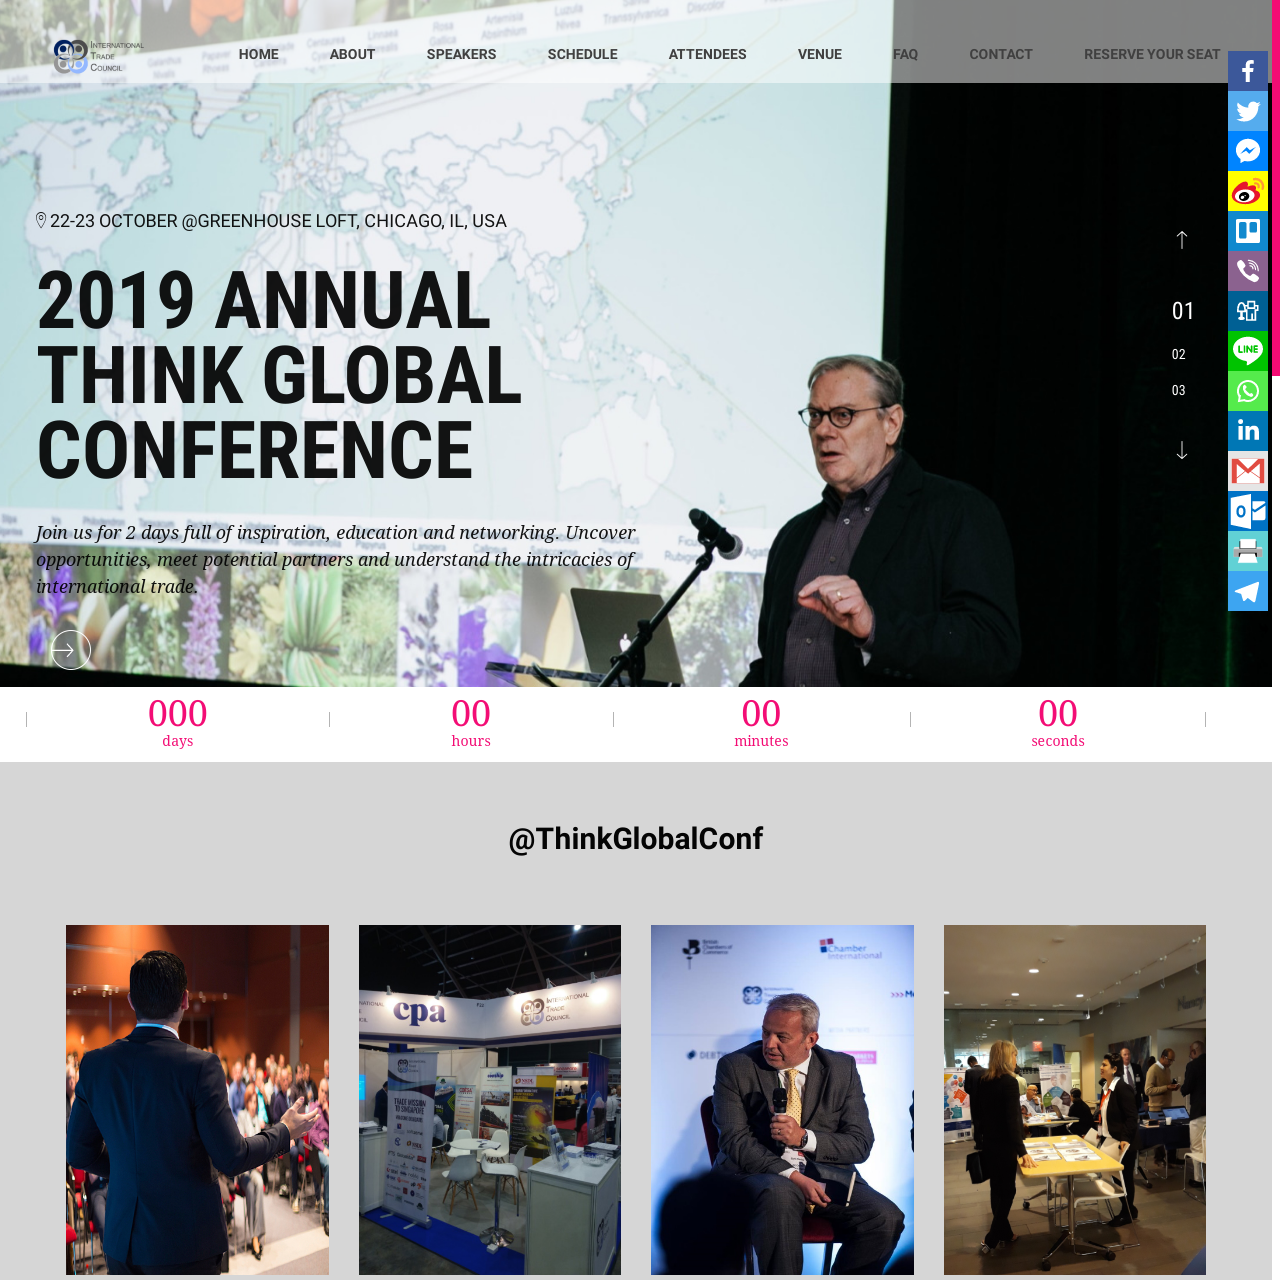 The Think Global Conference - the International Trade Council, a peak-body, non-profit chamber of commerce. Assisting organizations with international trade, exporting, importing, trade finance, technical barriers to trade and more.